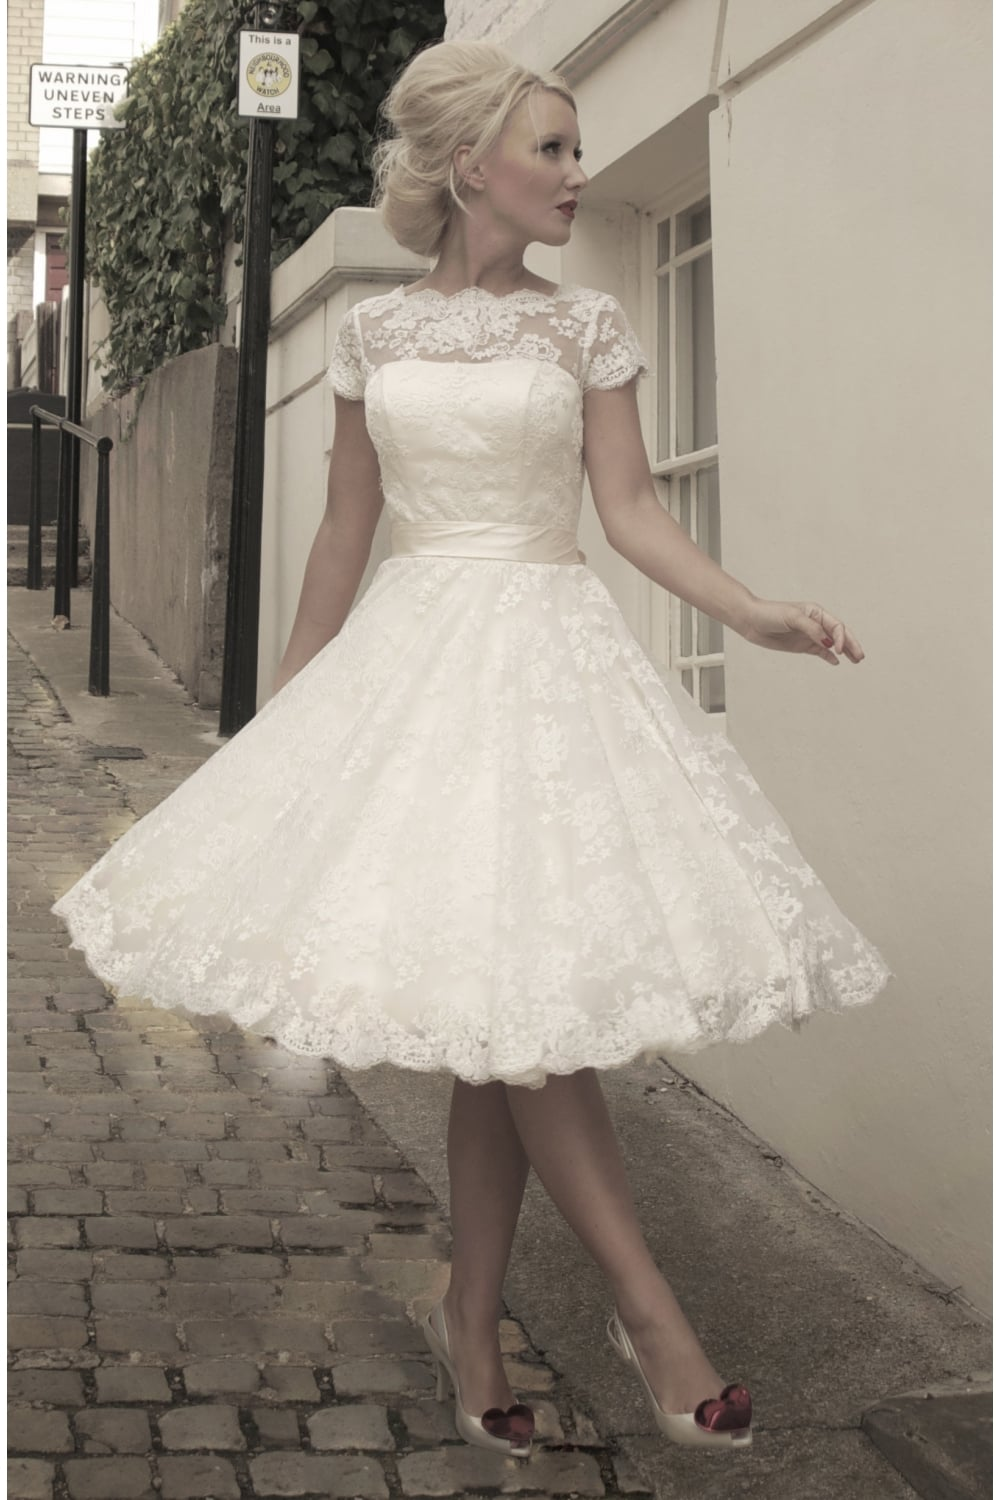 Awesome Sixties Wedding Dress Pictures - Wedding Dress Ideas ...